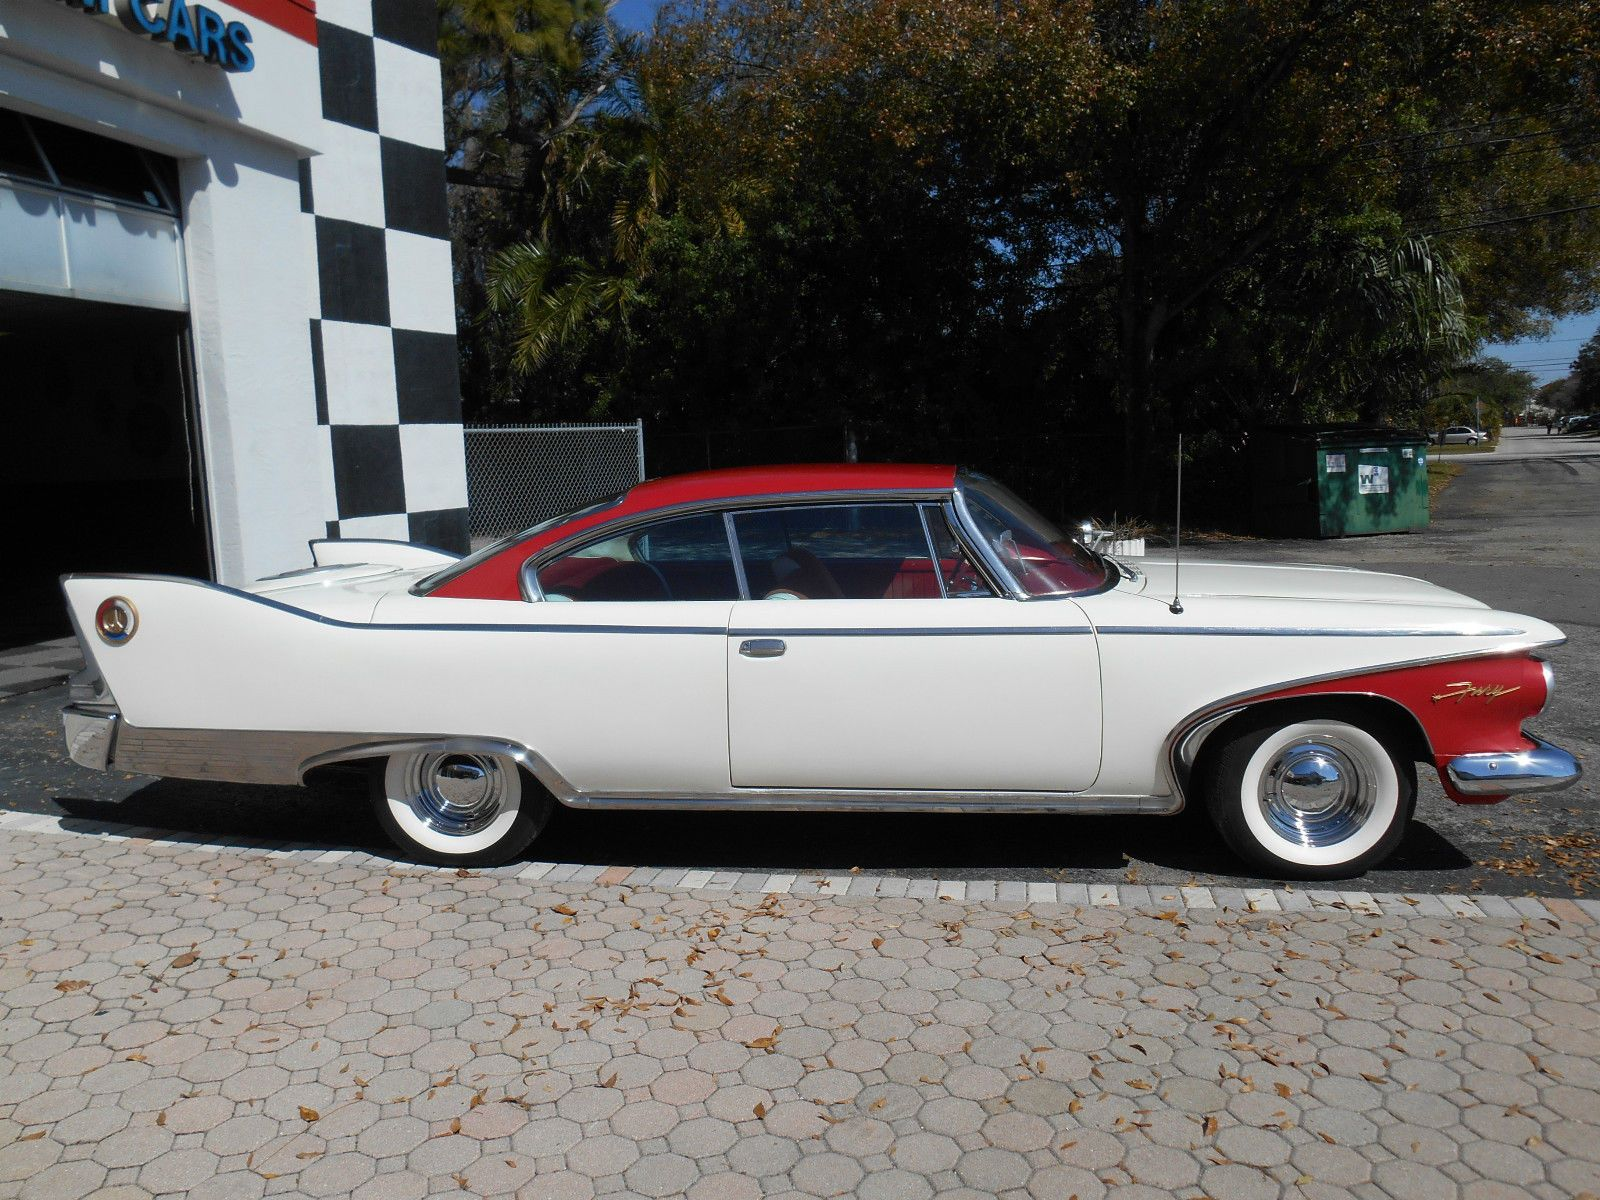 1960 Plymouth Fury | Old Cars | Pinterest | Plymouth fury, Plymouth ...